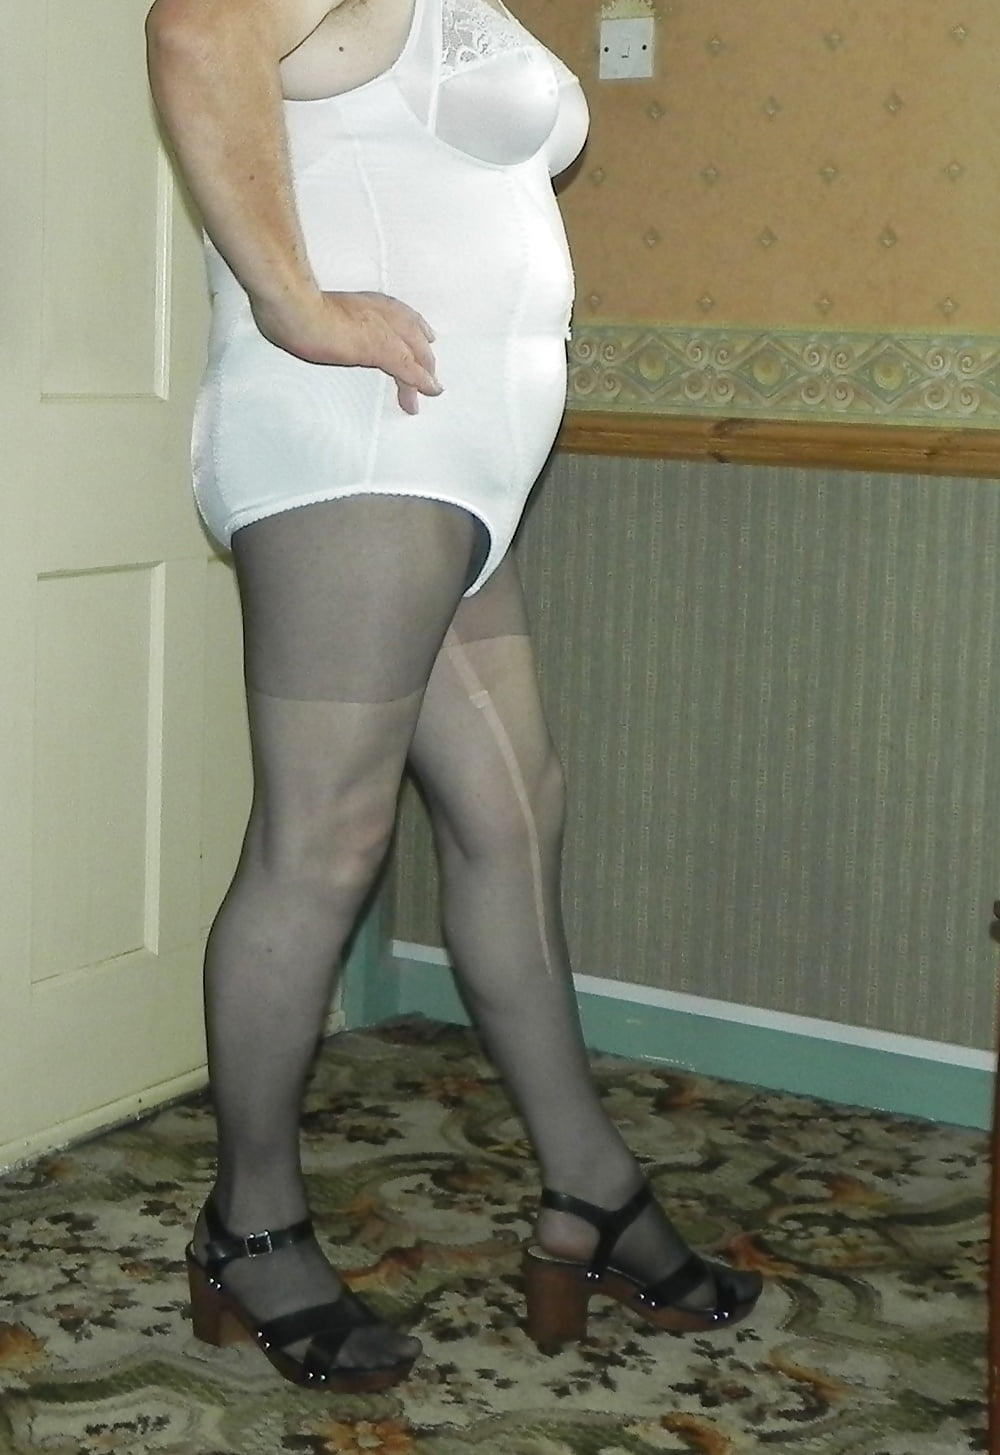 Milf with white panty